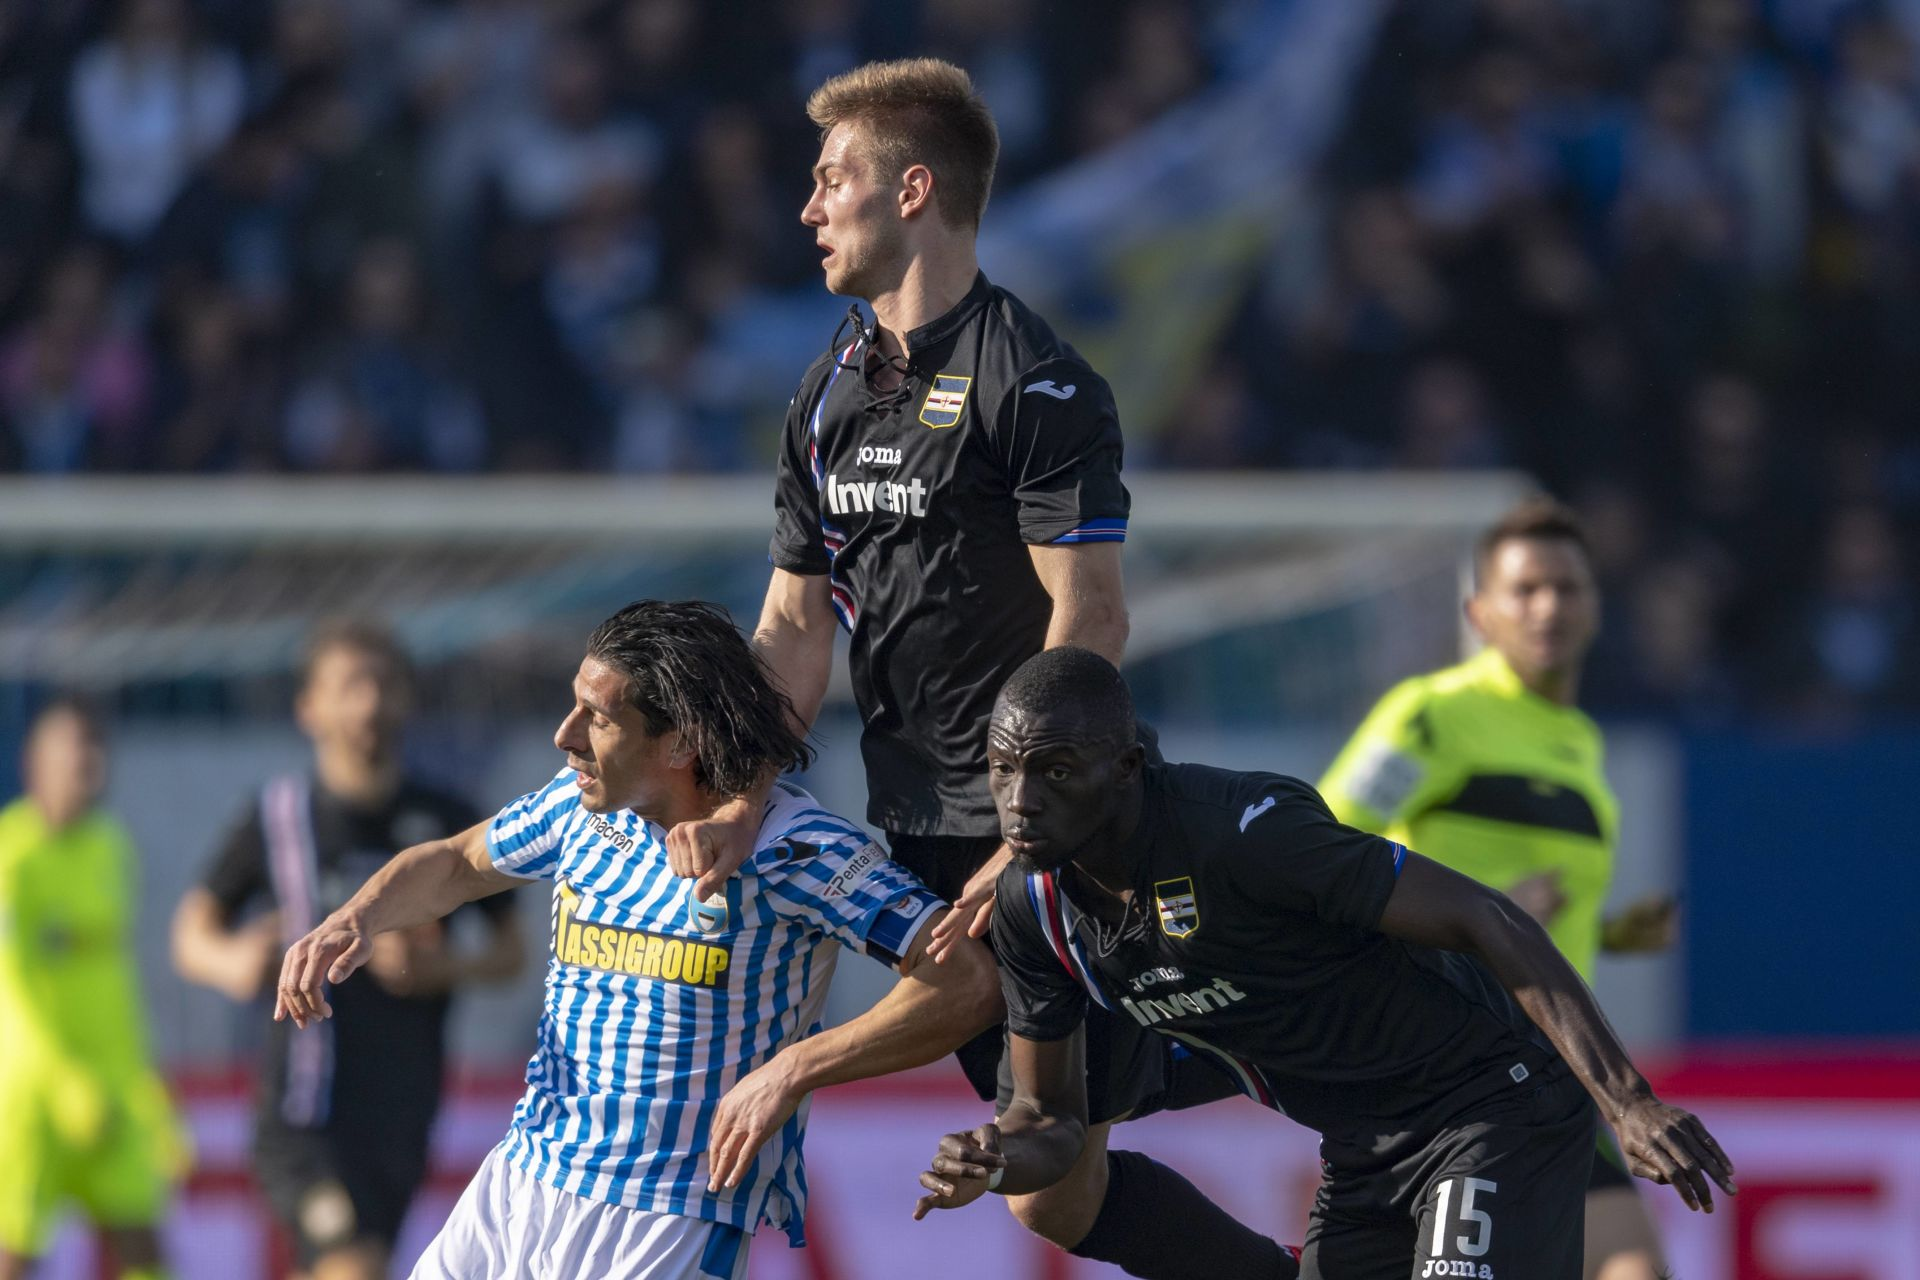 "Joachim Andersen (Sampdoria) Sergio Floccari (Spal) Omar Colley (Sampdoria) during the Italian ""Serie A"" match between Spal 1-2 Sampdoria at Paolo Mazza Stadium on March 03 , 2019 in Ferrara, Italy. (Photo by Maurizio Borsari/AFLO) LIGA WLOSKA PILKA NOZNA SEZON 2018/2019 FOT. AFLO/NEWSPIX.PL POLAND ONLY! --- Newspix.pl *** Local Caption *** www.newspix.pl mail us: info@newspix.pl call us: 0048 022 23 22 222 --- Polish Picture Agency by Ringier Axel Springer Poland"